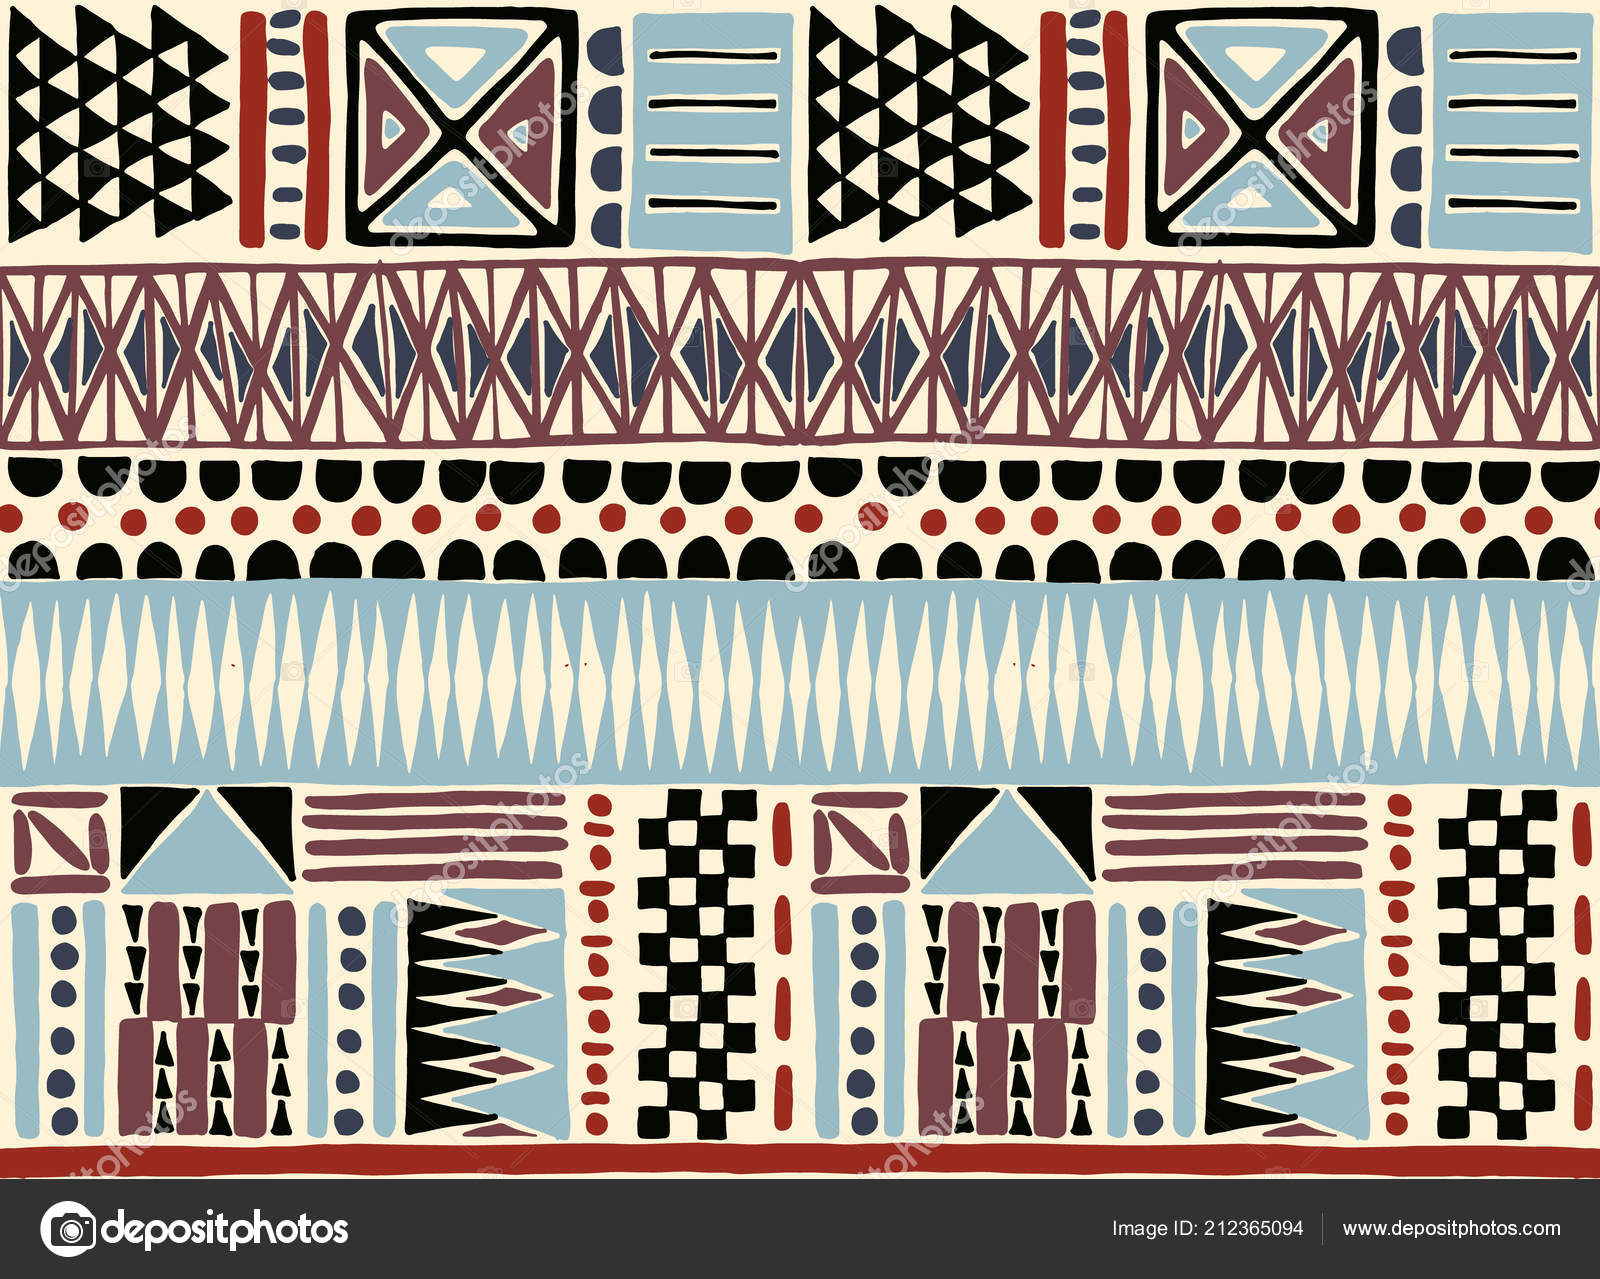 Ethnic Carpet With Chevrons. Aztec Style. Geometric Mosaic On The Tile,  Majolica. Ancient Interior. Modern Rug. Geo Print On Textile. Kente Cloth.